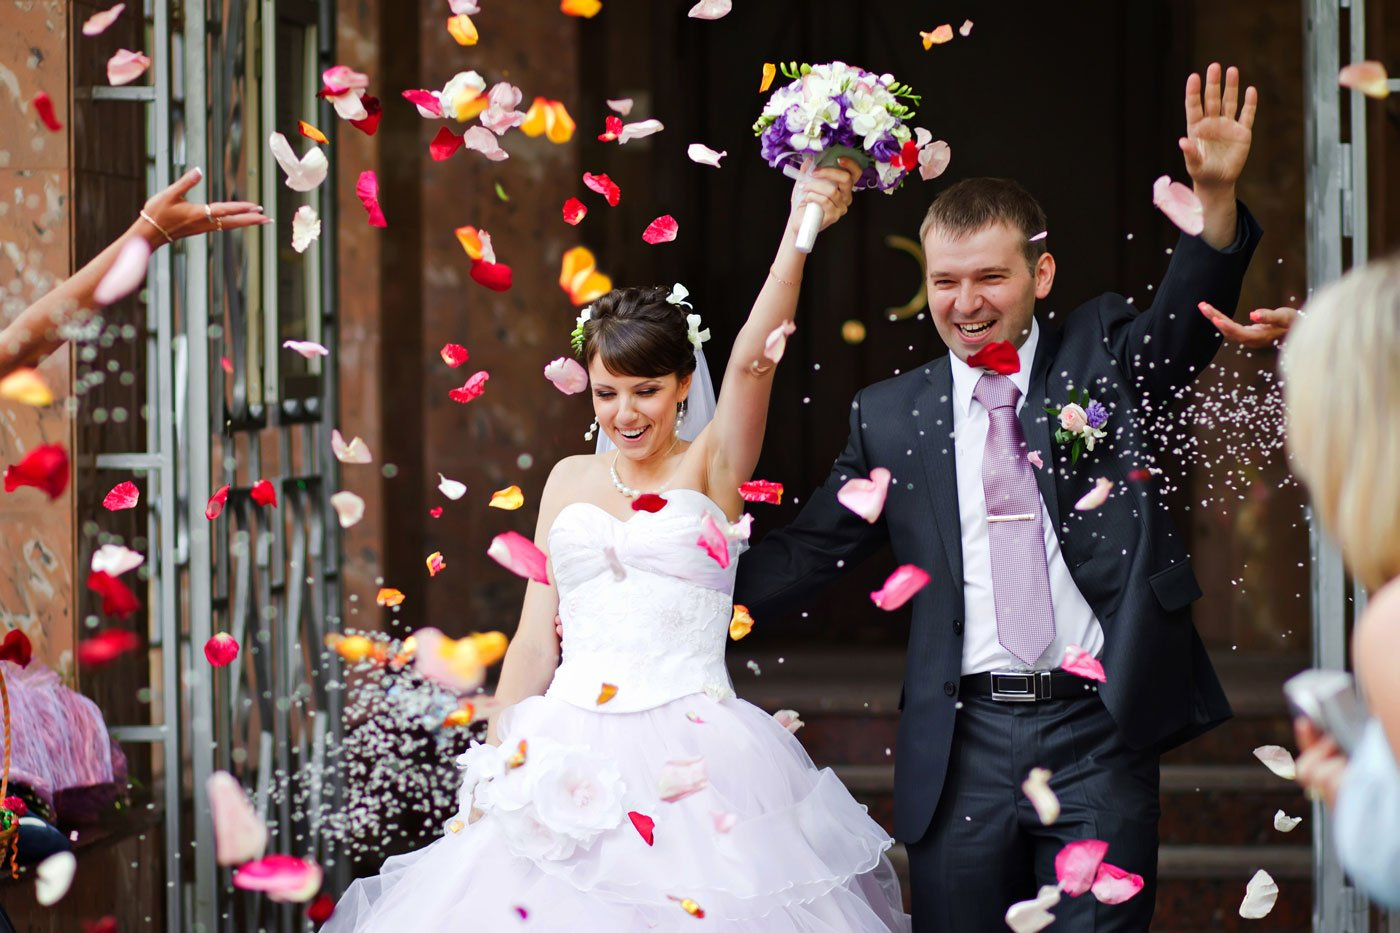 Couple celebrating after marriage